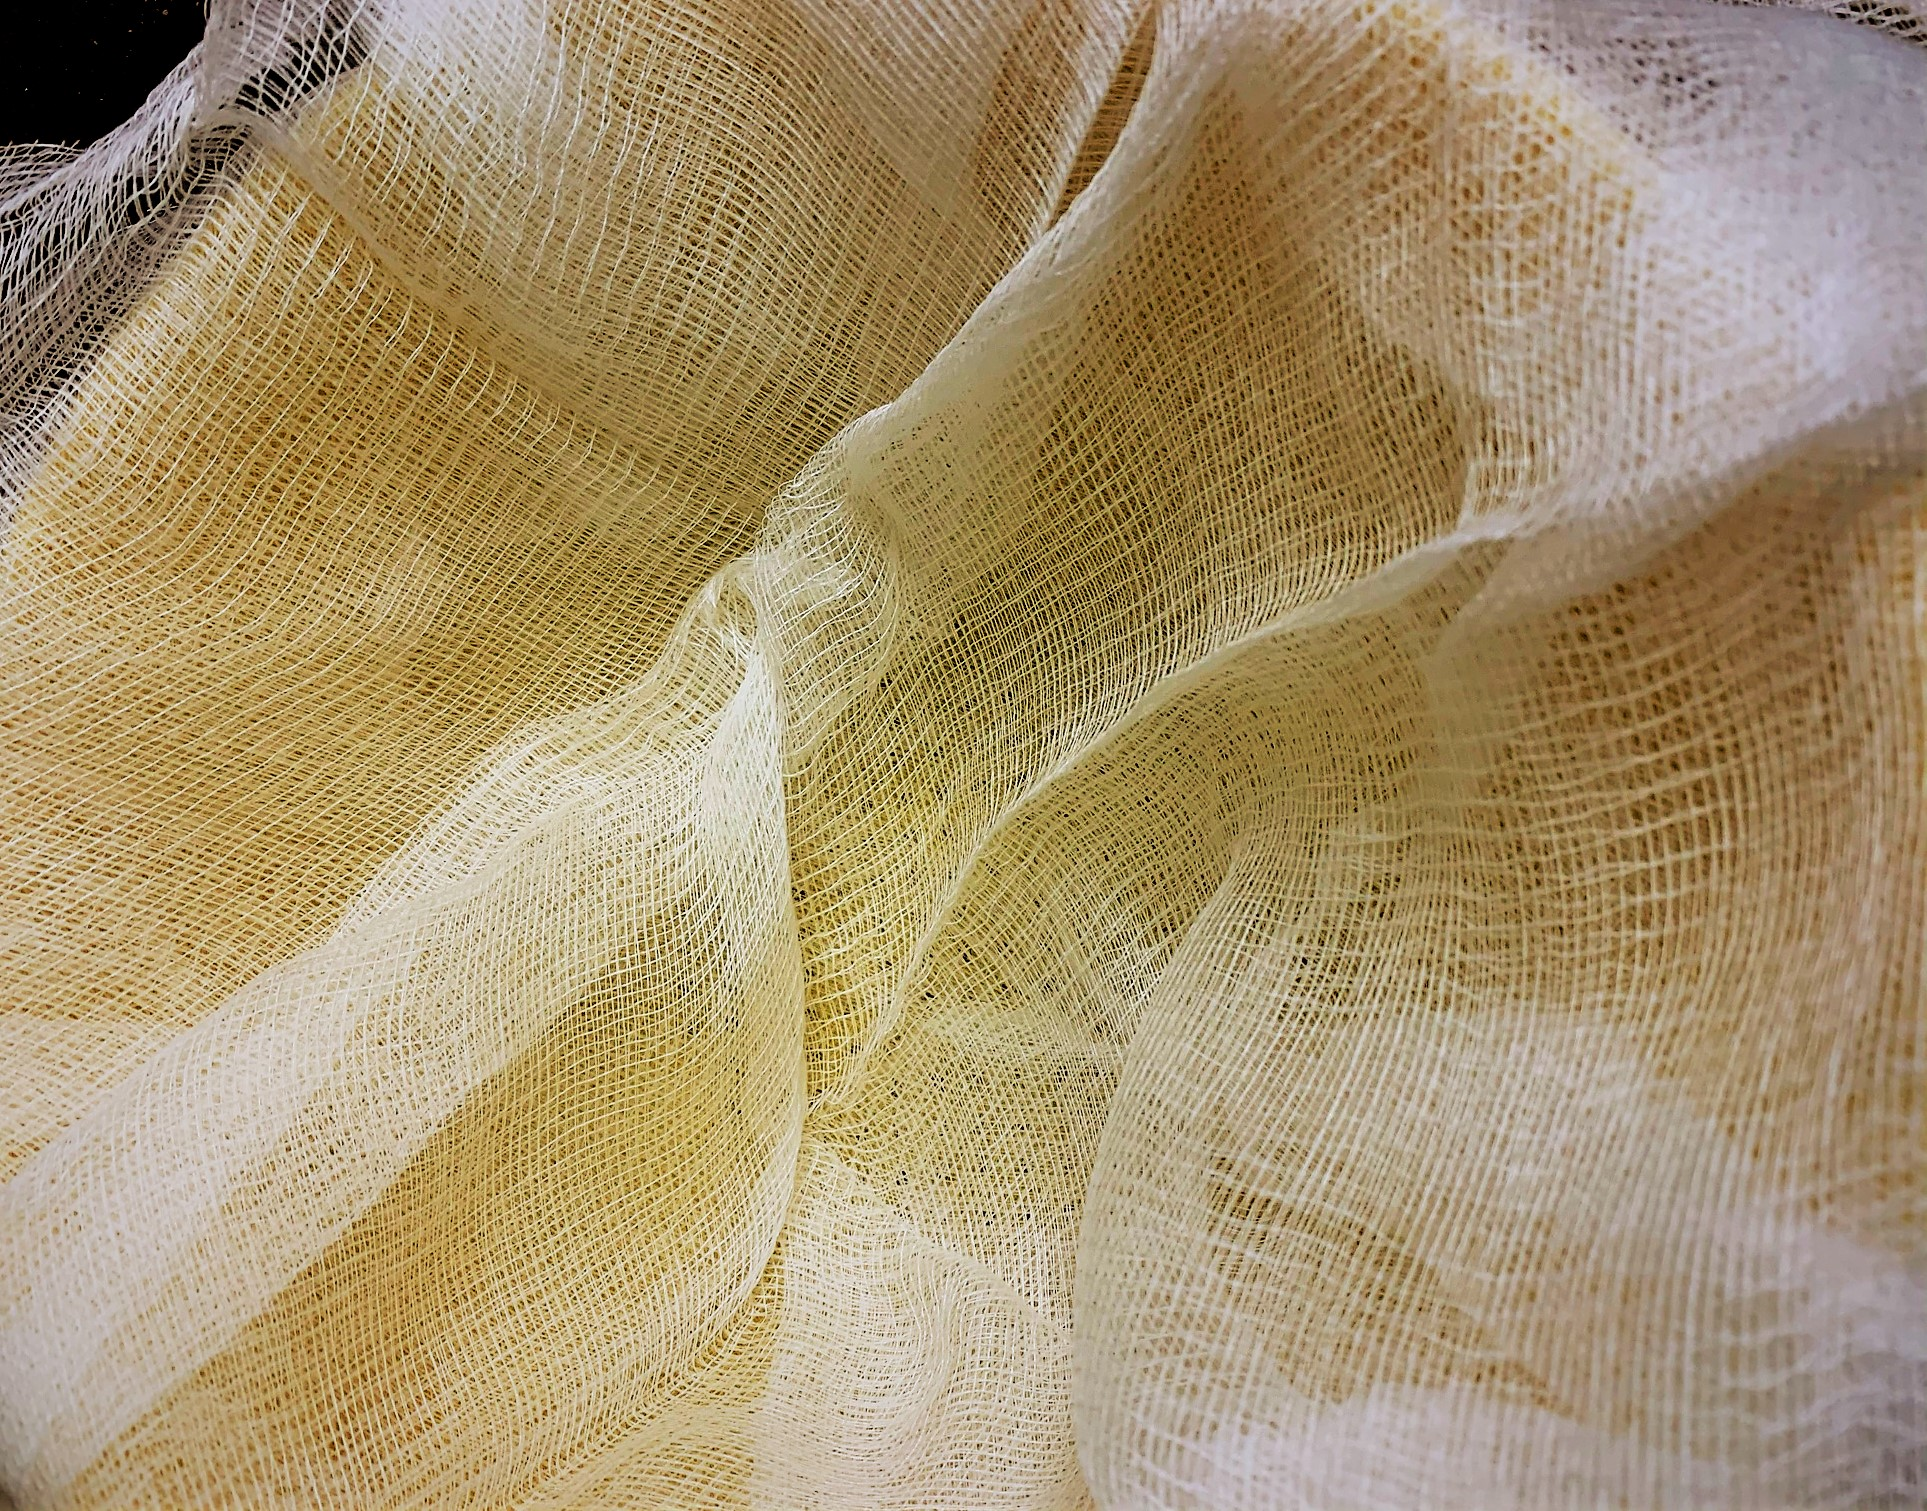 Layers of Cheese Cloth for our shredded Potatoes and Onions